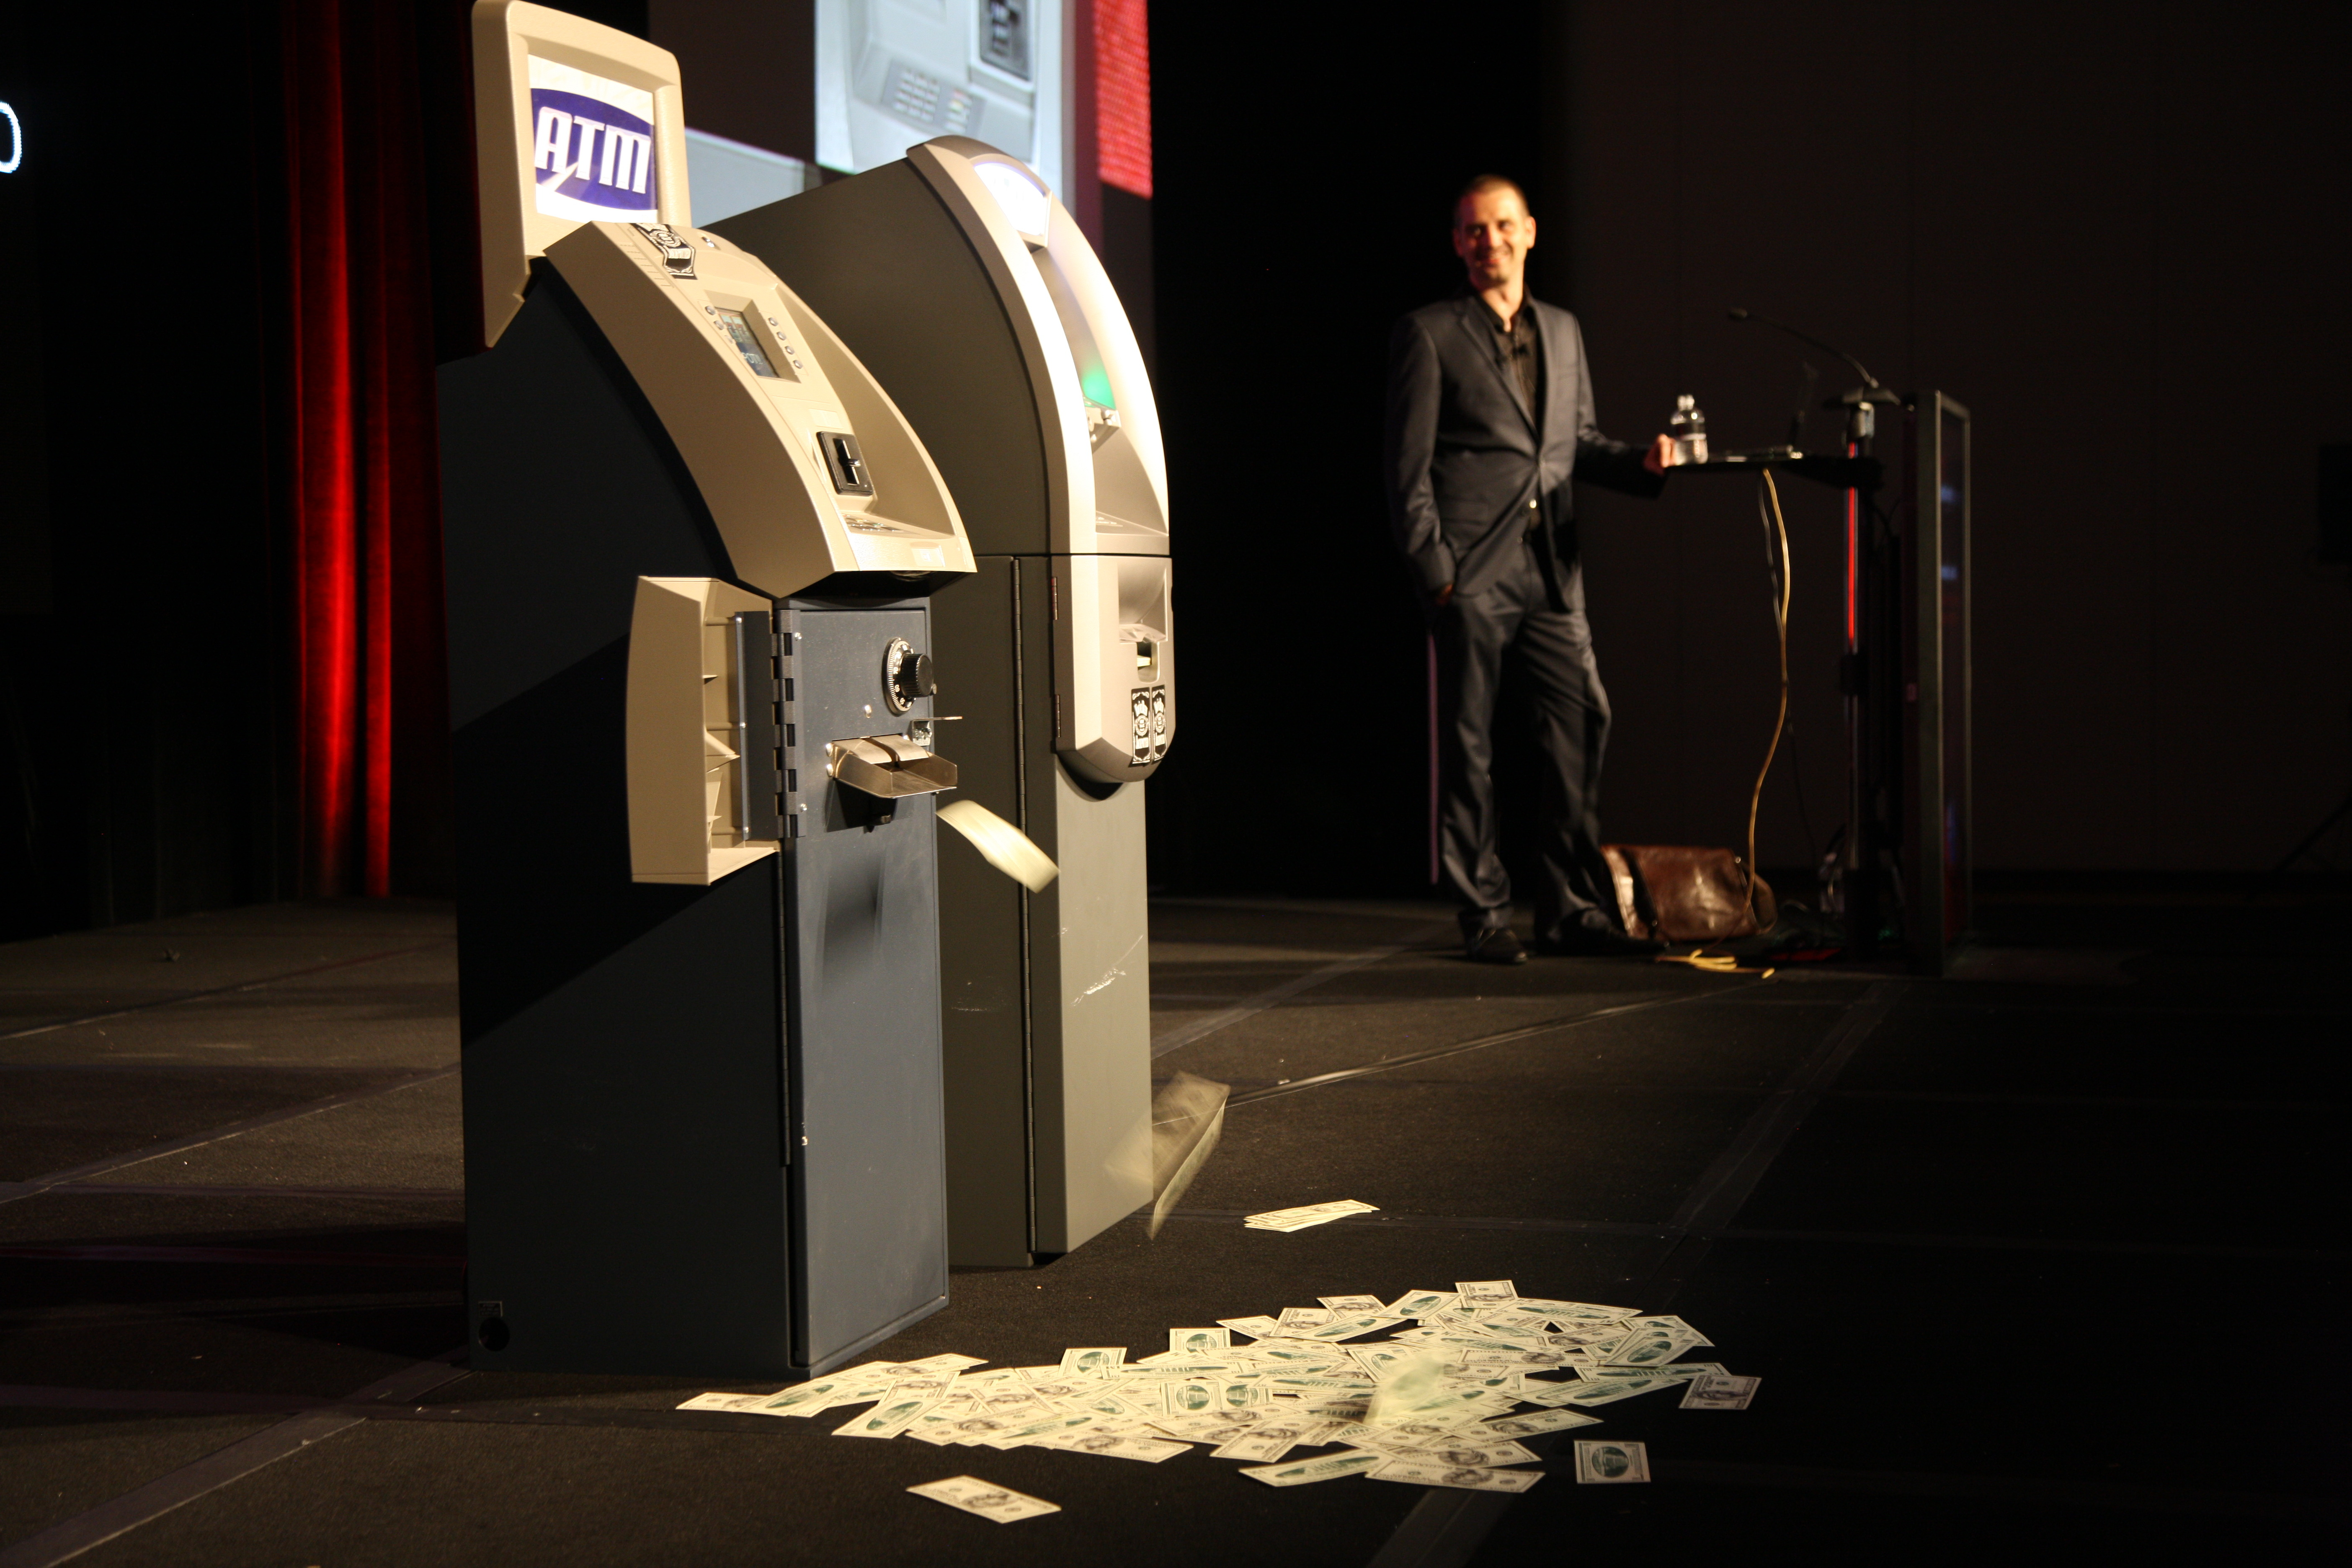 Security researcher Barnaby Jack demonstrates how he bypassed the security of two ATMs.